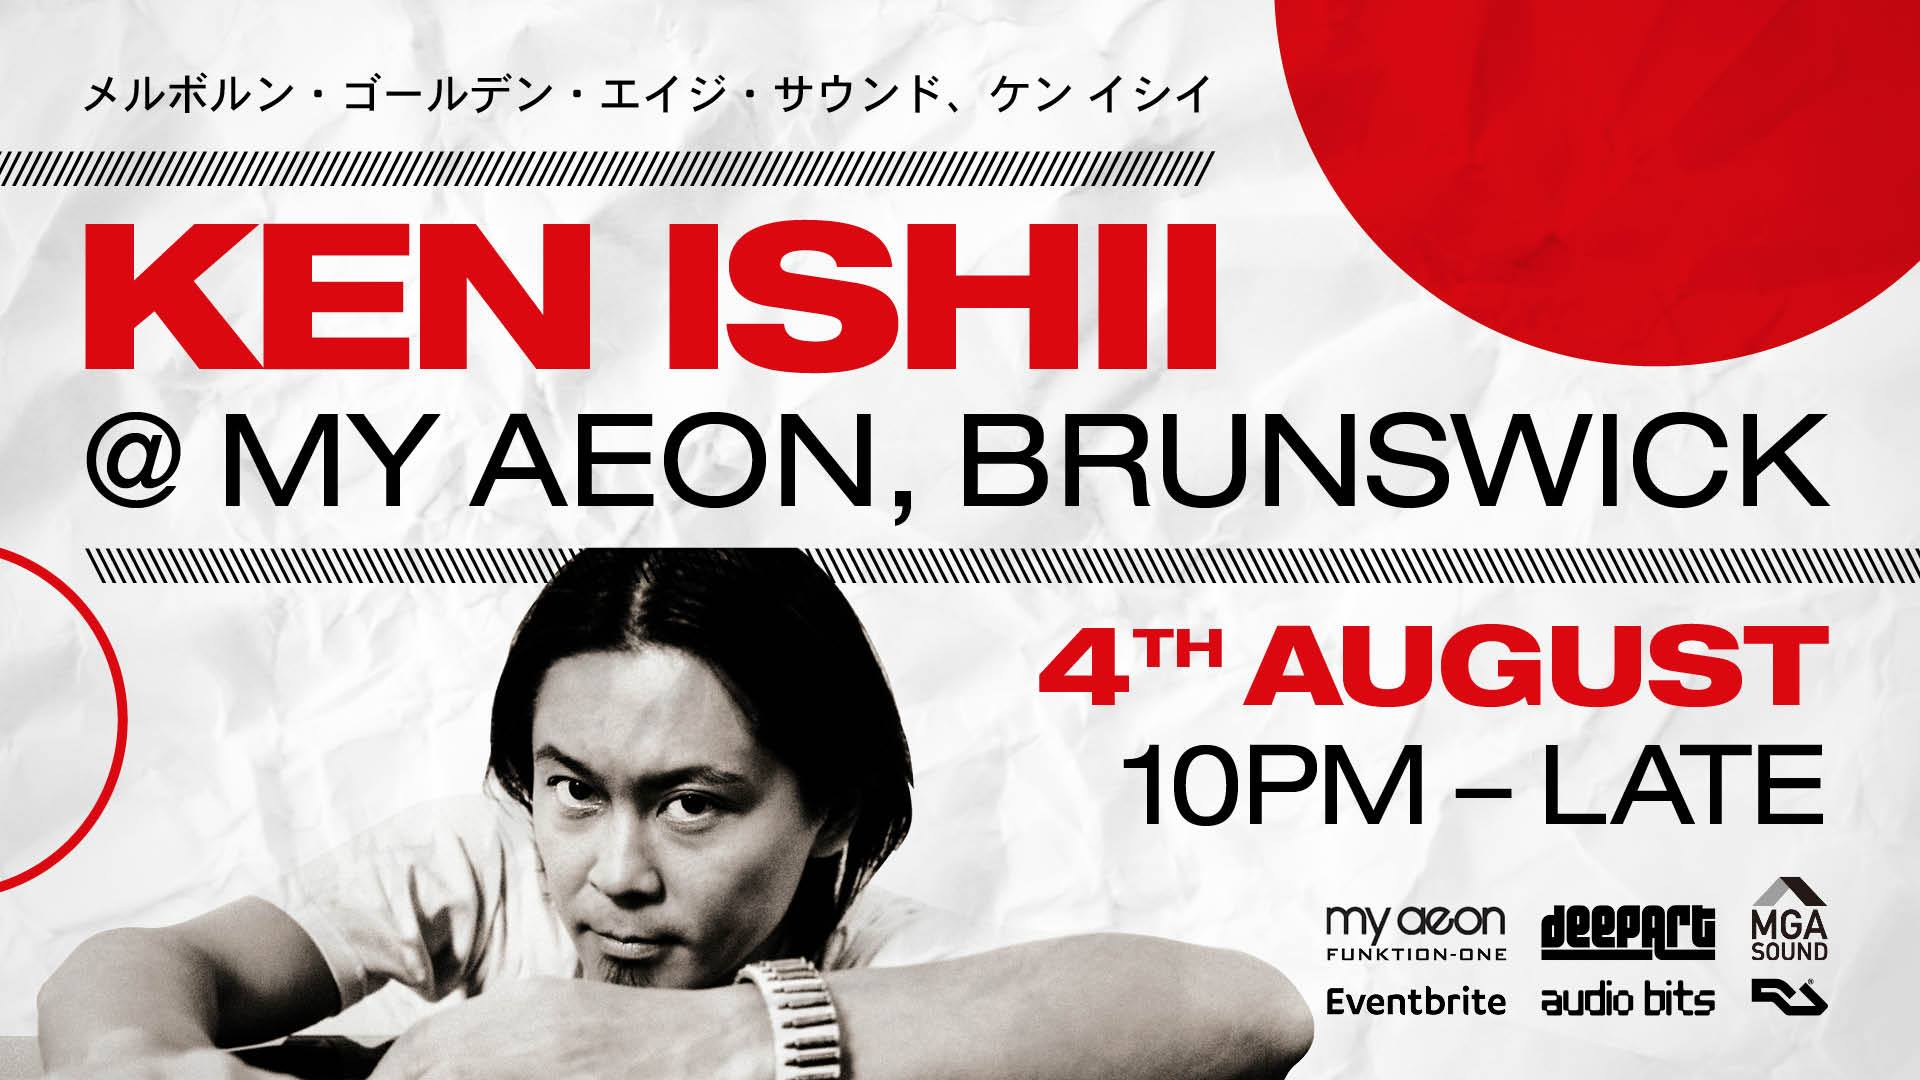 KEN ISHII at My Aeon with MGA SOUND: 4th August 2017